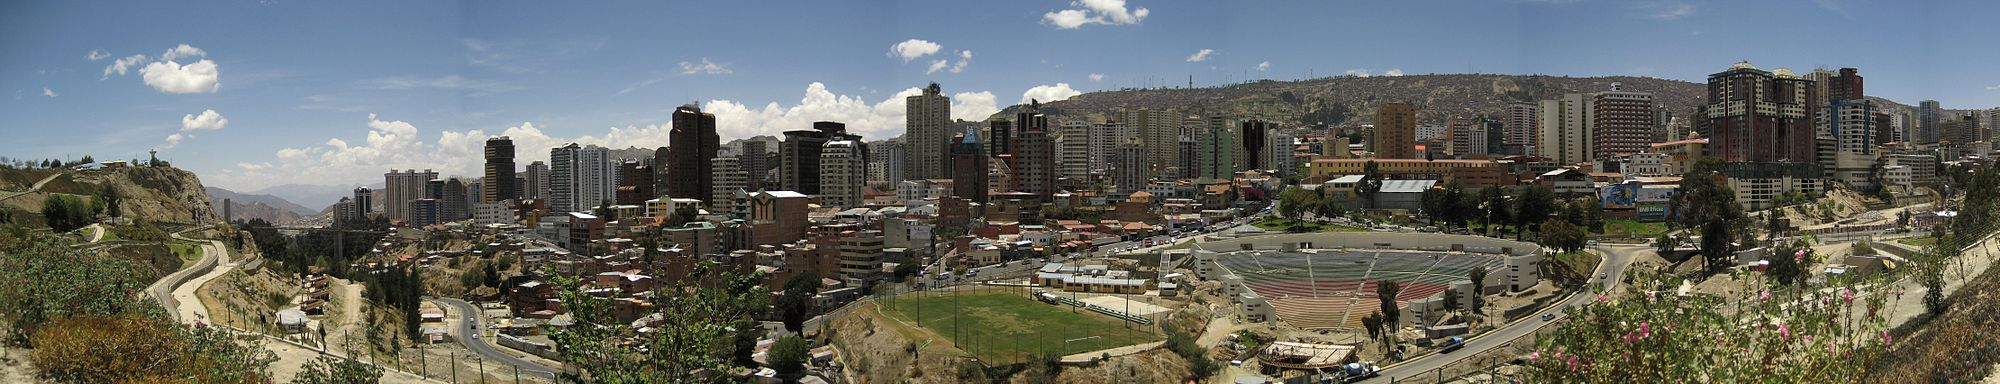 Vista panorámica escontra l'occidente de la ciudá de La Paz.